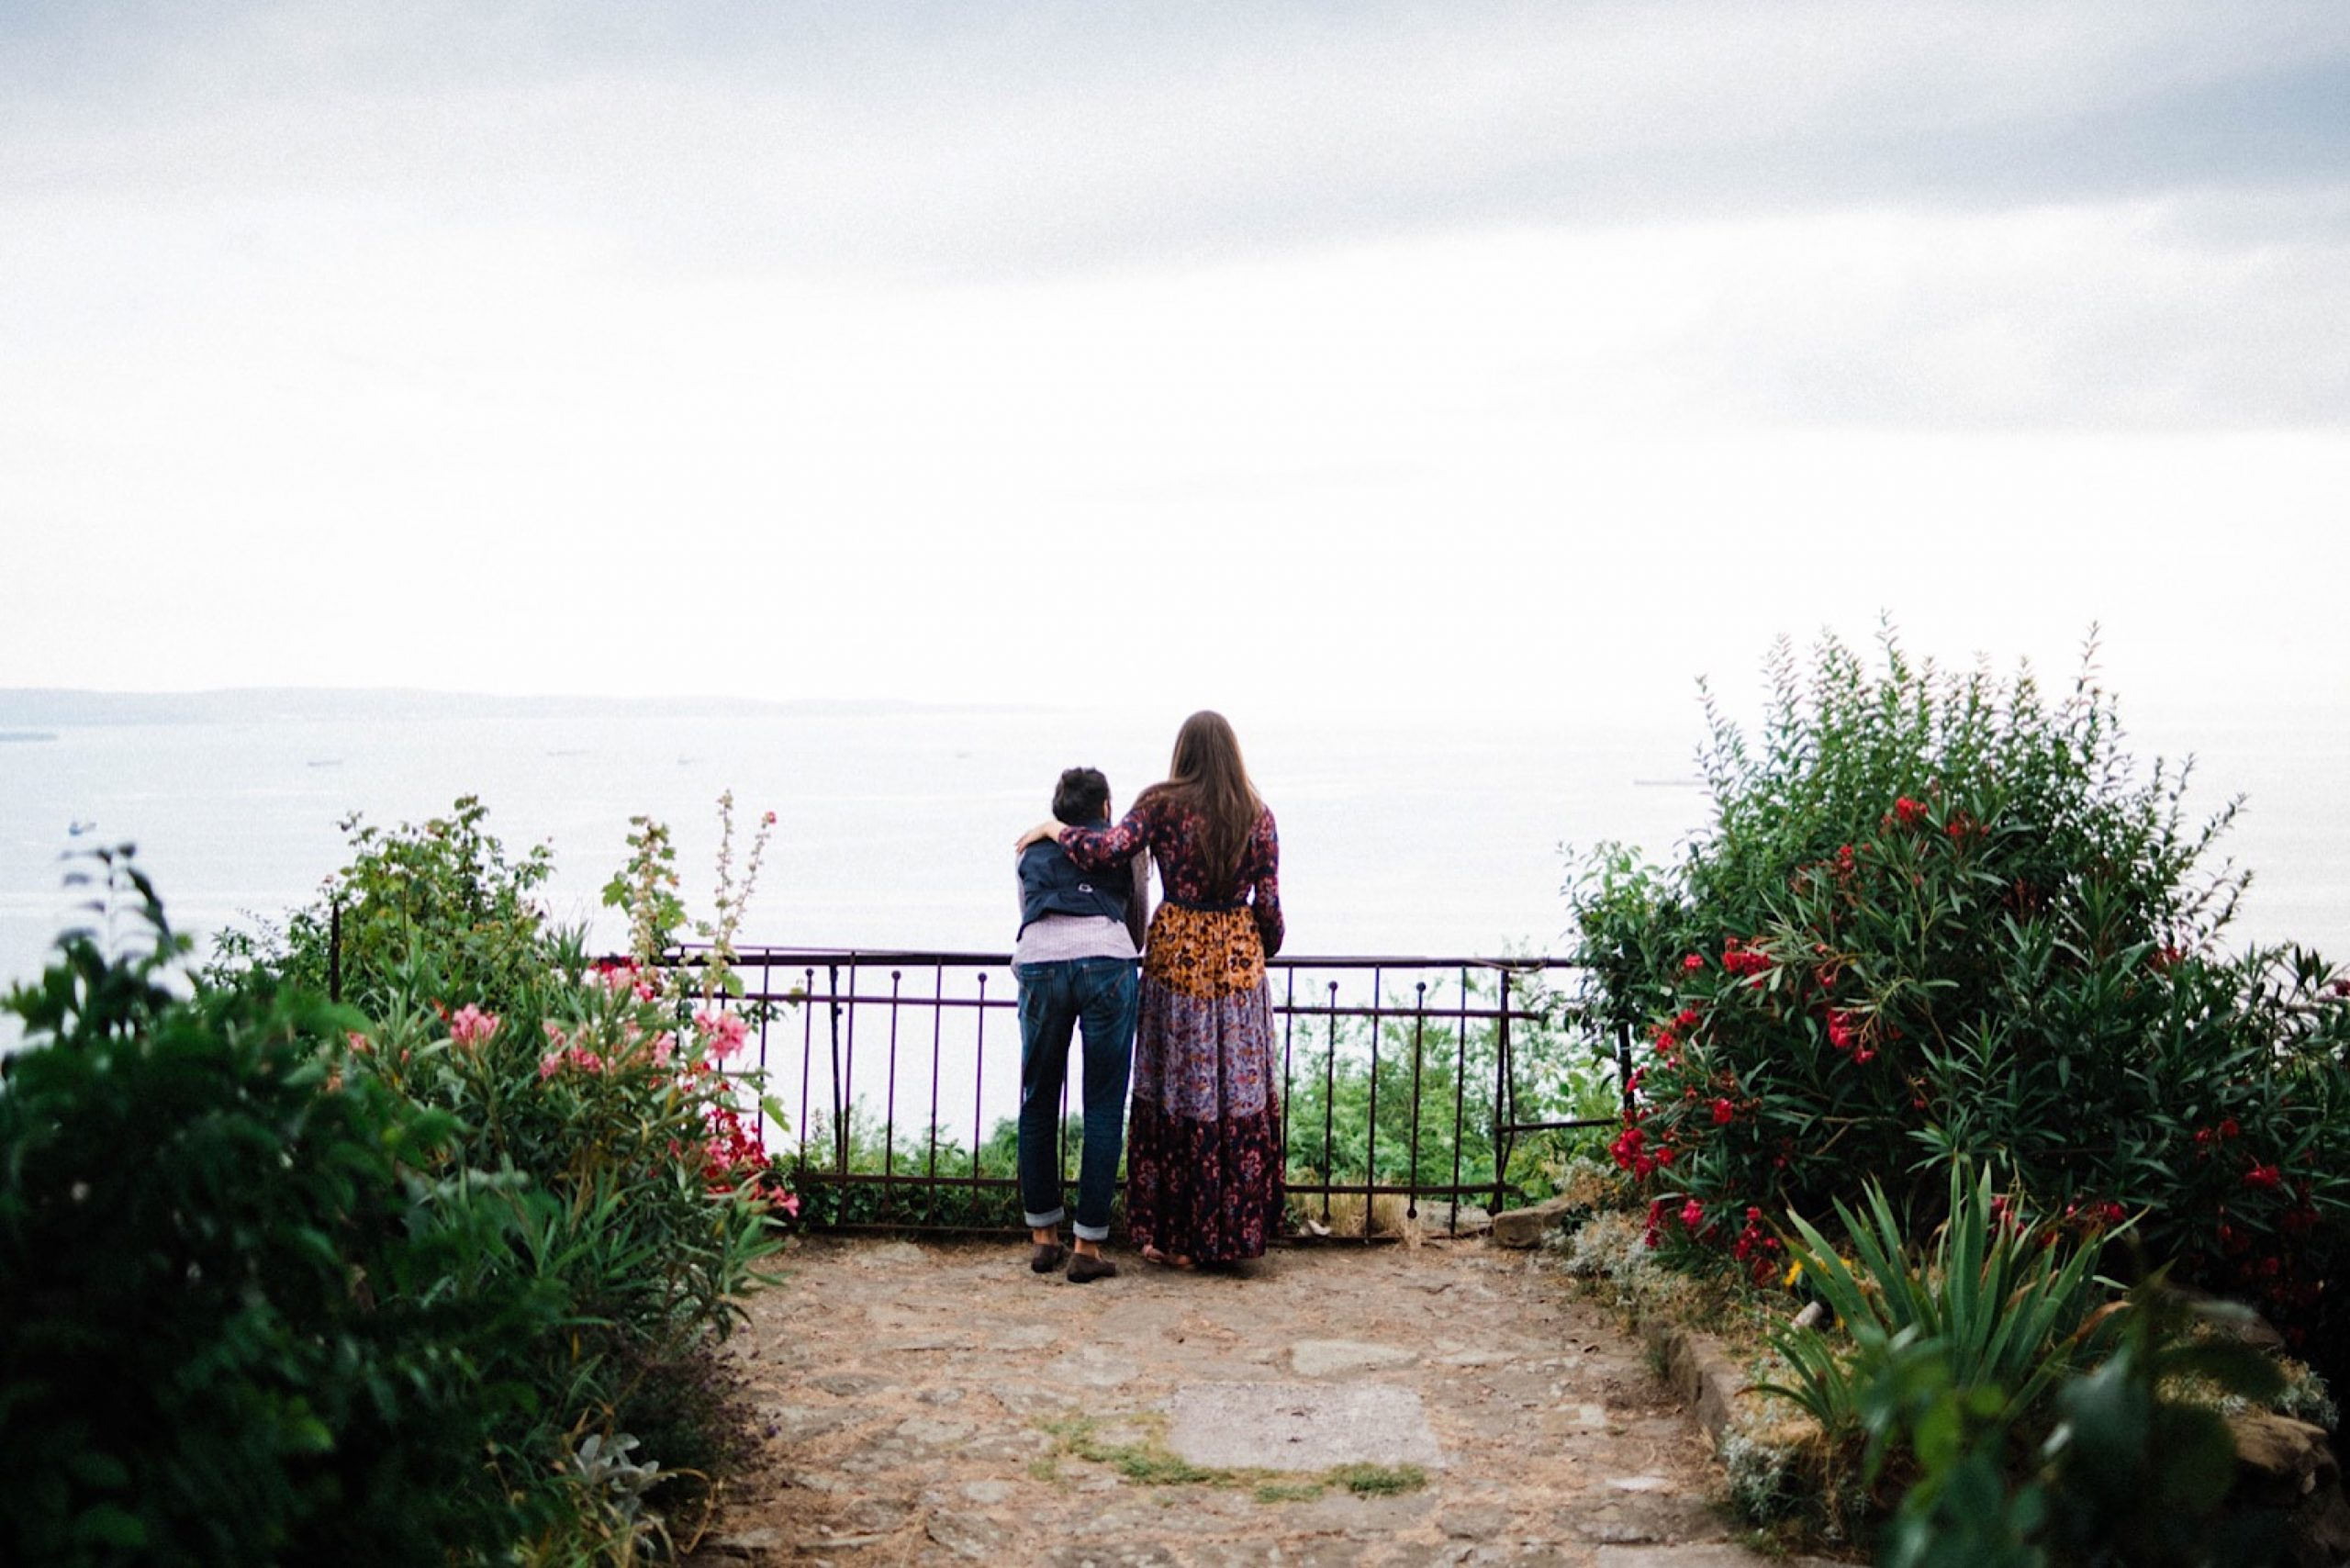 A wide photo of a newlywed couple leaning on a fence, surrounded by a summer garden and looking out over Trieste's Adriatic Sea.